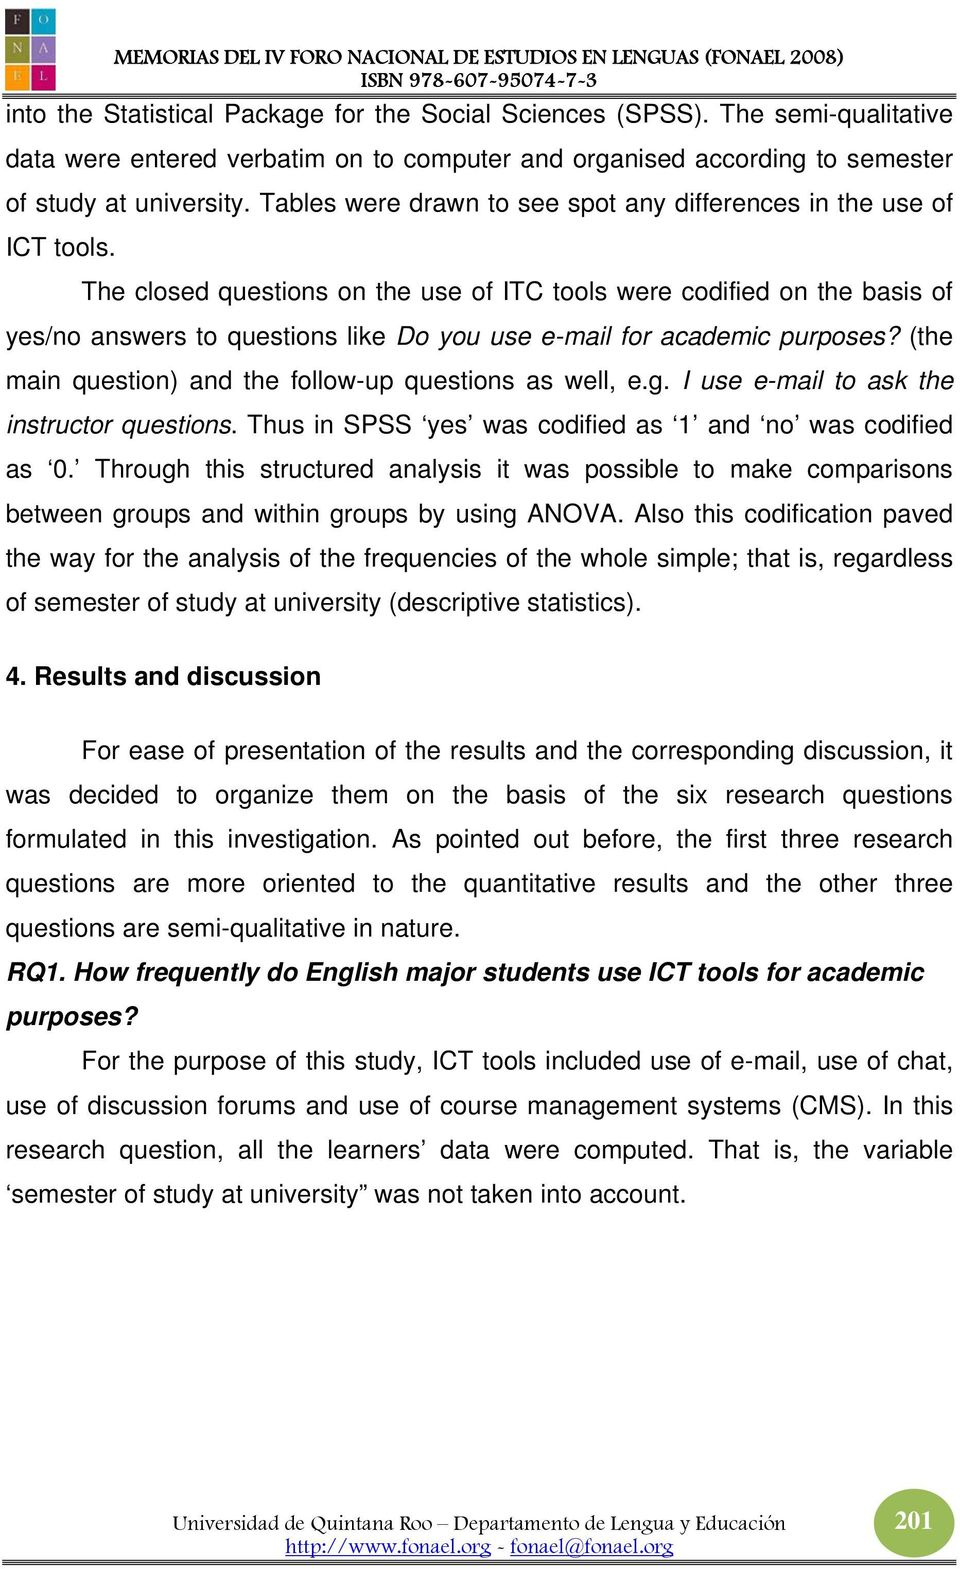 The closed questions on the use of ITC tools were codified on the basis of yes/no answers to questions like Do you use e-mail for academic purposes?